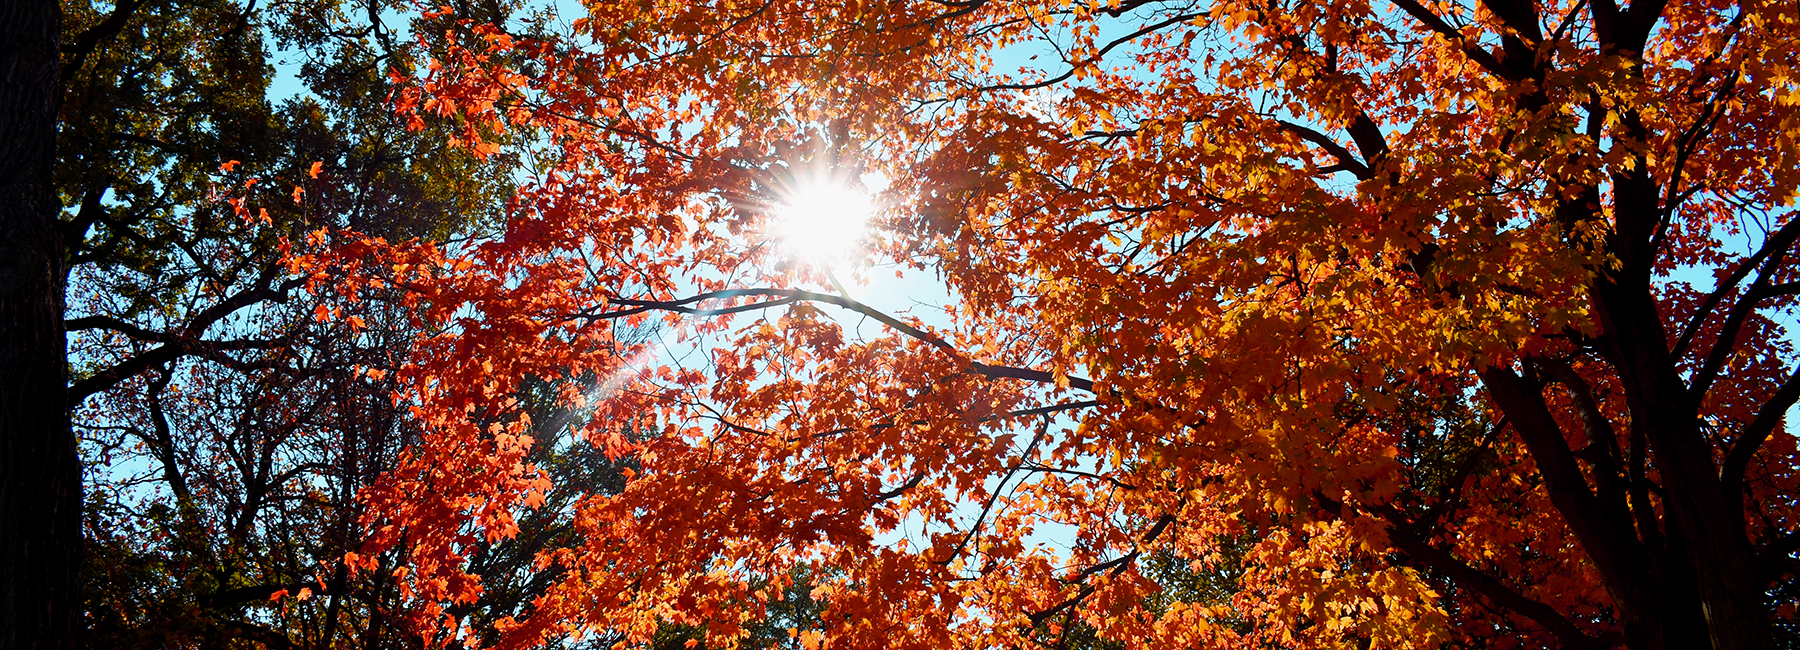 Sun peering through fall leaves